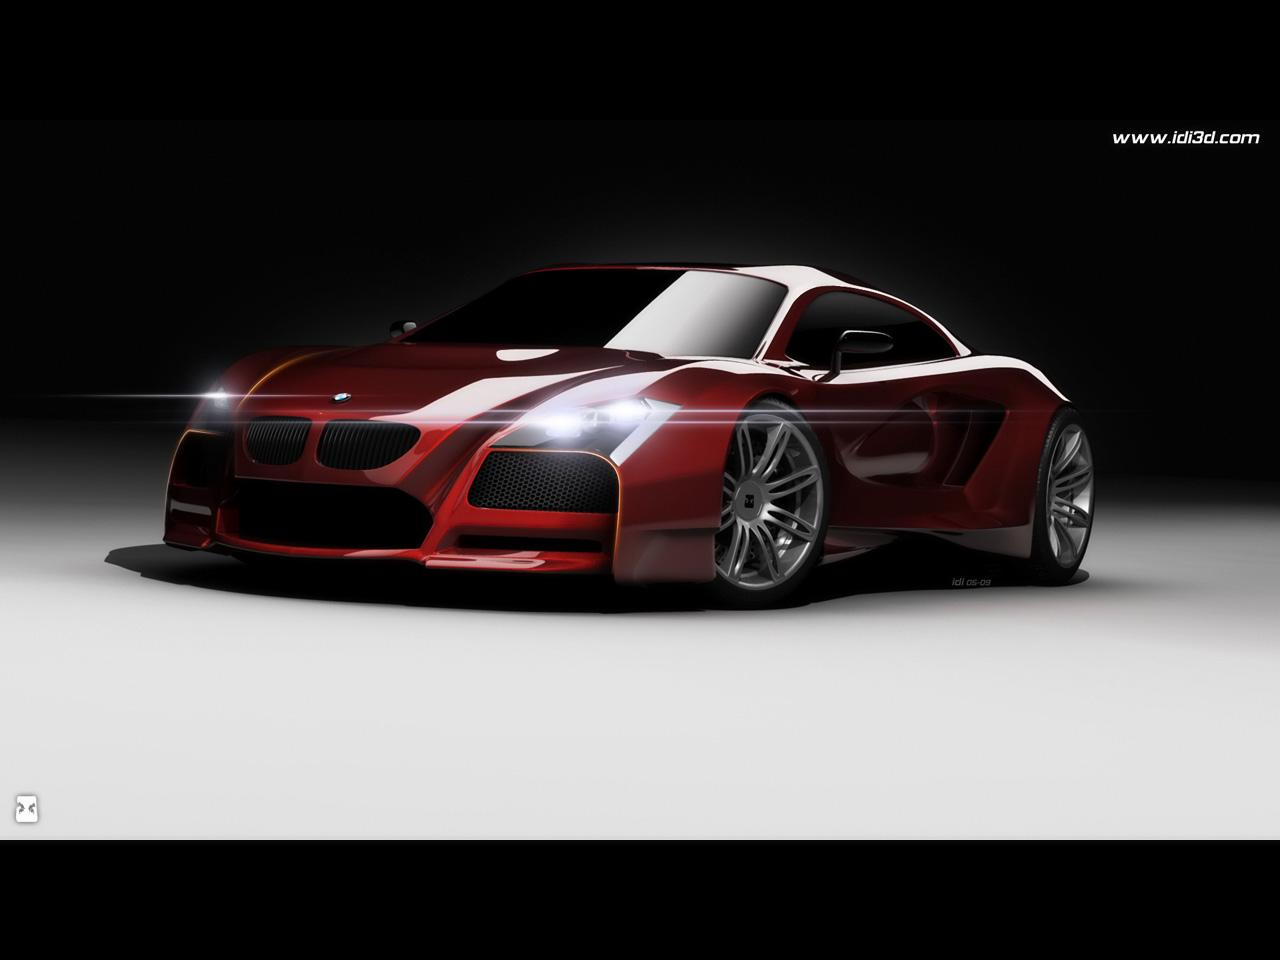 New BMW M Supercar Concept: A Main Competitor For An Audi